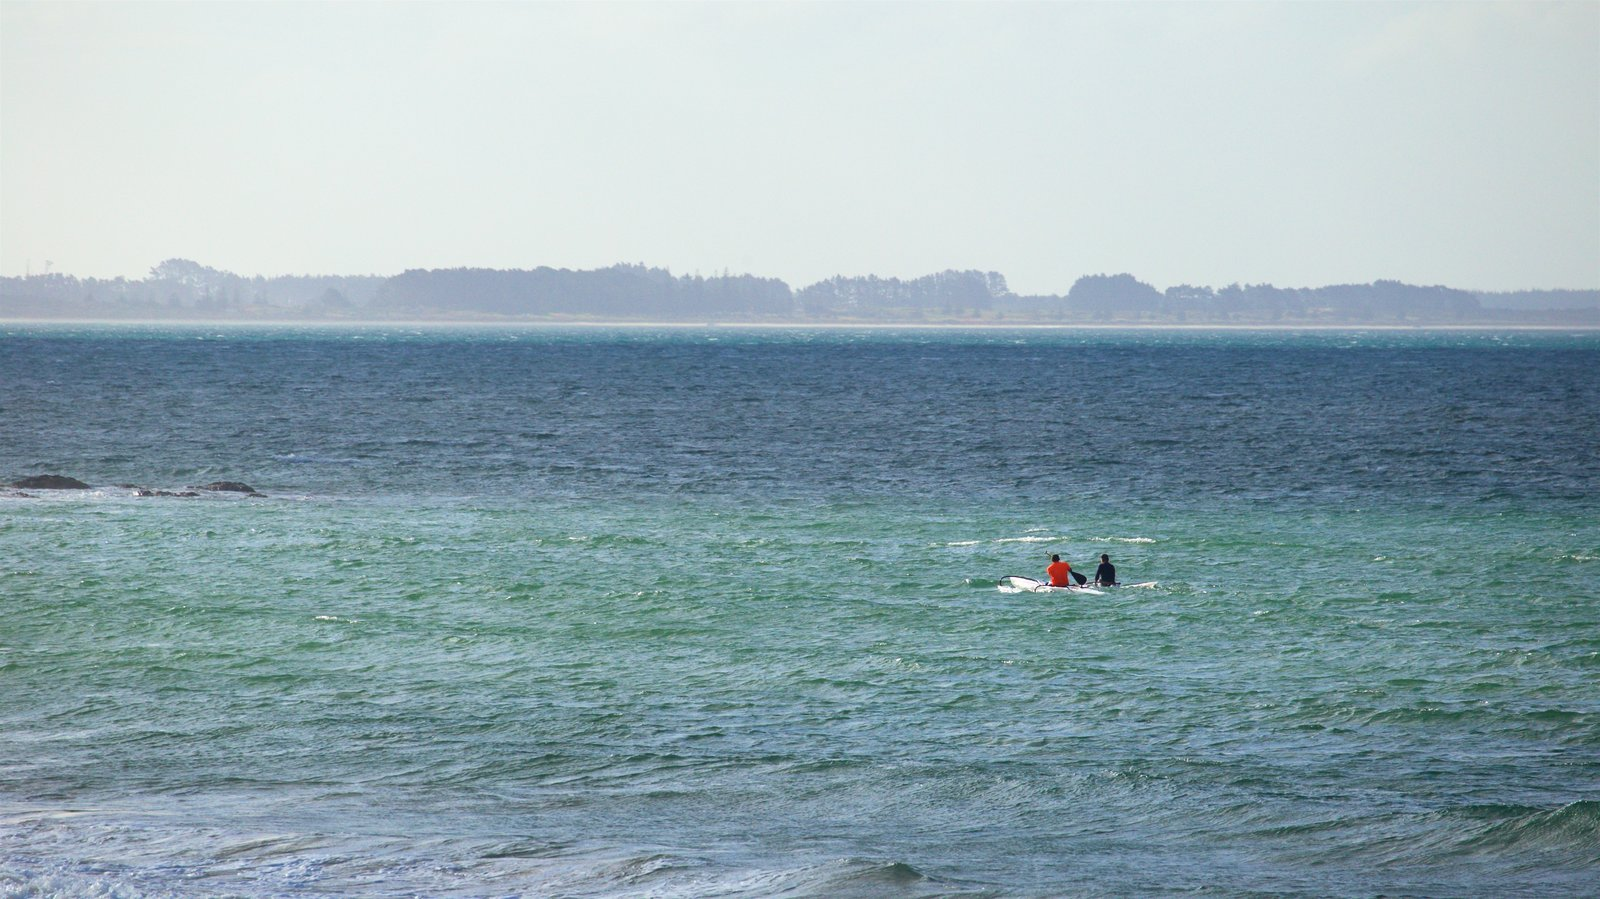 Cable Bay which includes general coastal views and kayaking or canoeing as well as a couple